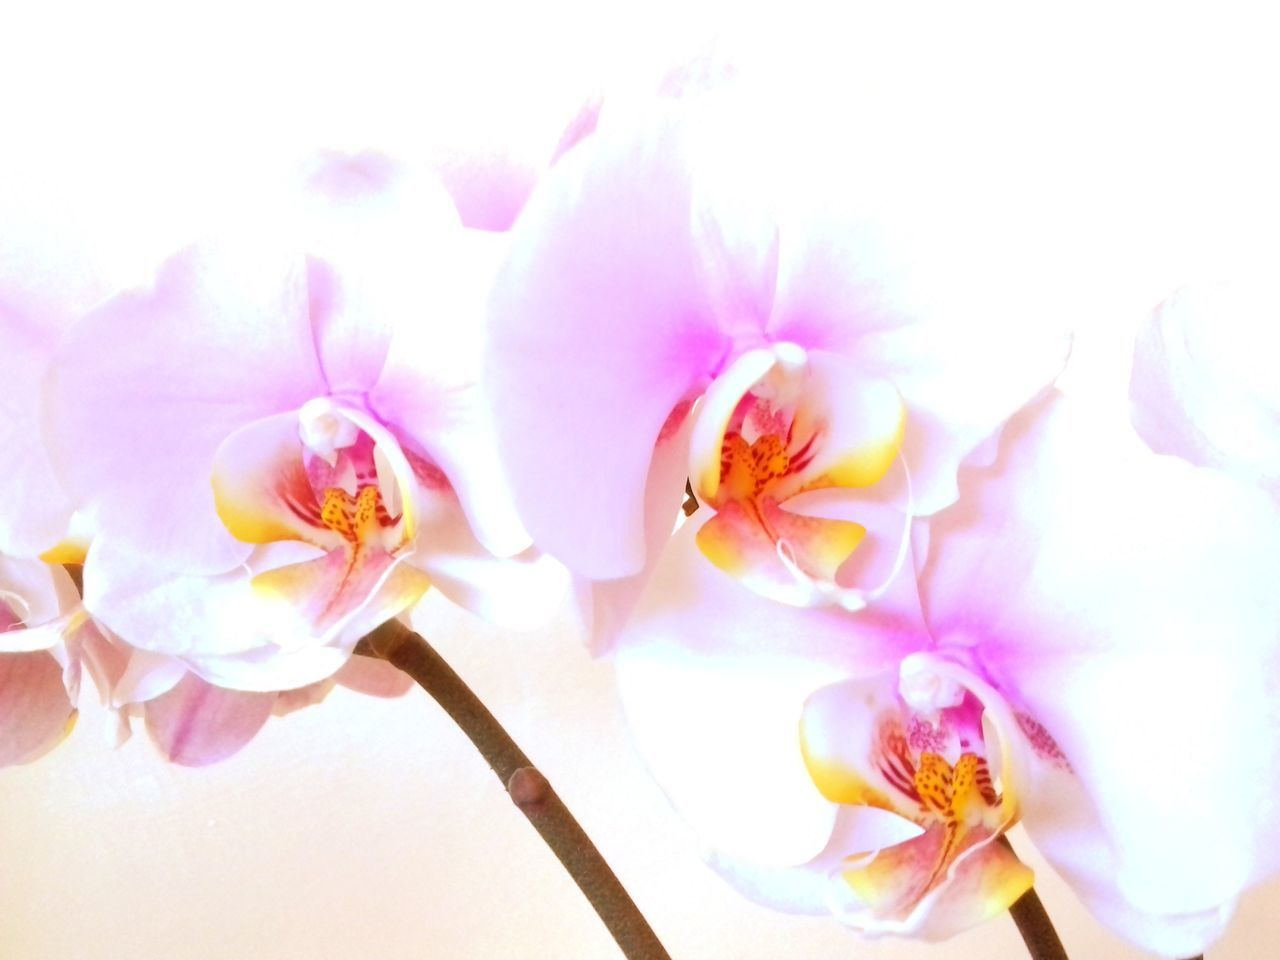 Freshness Petal Flower Fragility Beauty In Nature Close-up In Bloom Botany Nature Blossom White Color Pink Color Kwiat Orchids Orchidea Orchid Blossoms Orchidslover Millennial Pink Neon Life